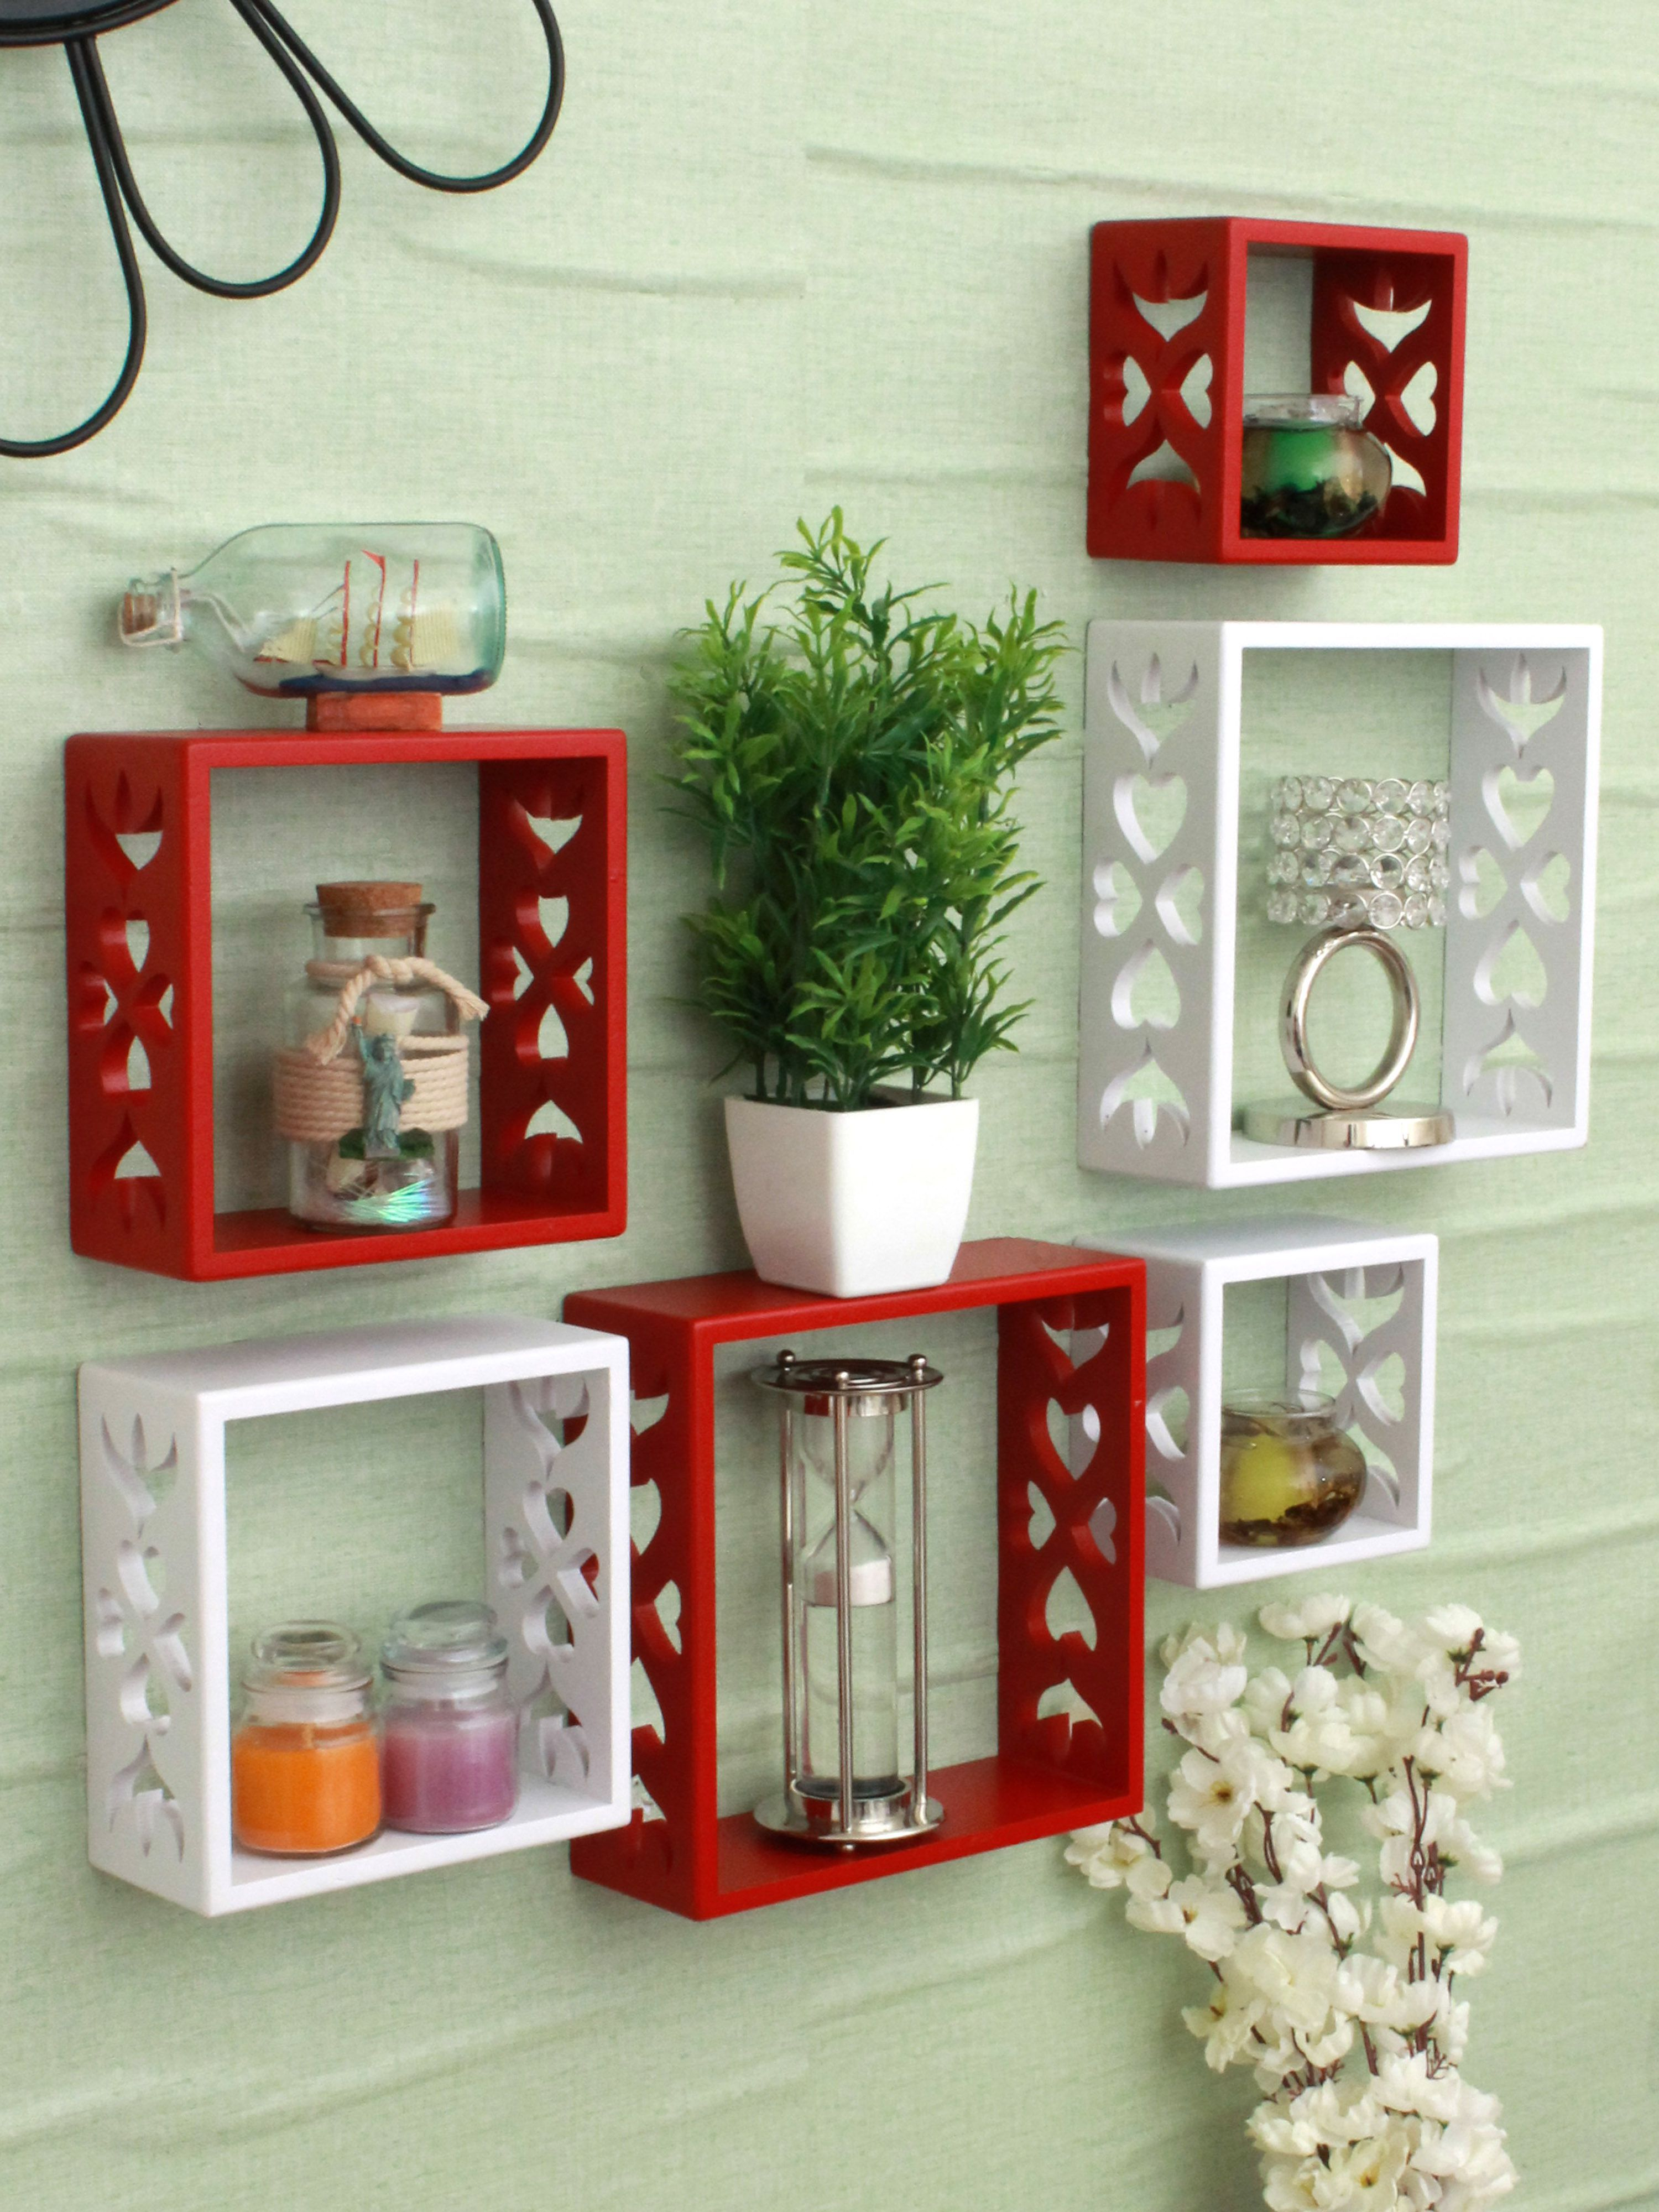 Home Sparkle MDF Set of 6 cube Wall Shelves For Wall Décor -Suitable For Living Room/Bed Room (Designed By Craftsman)